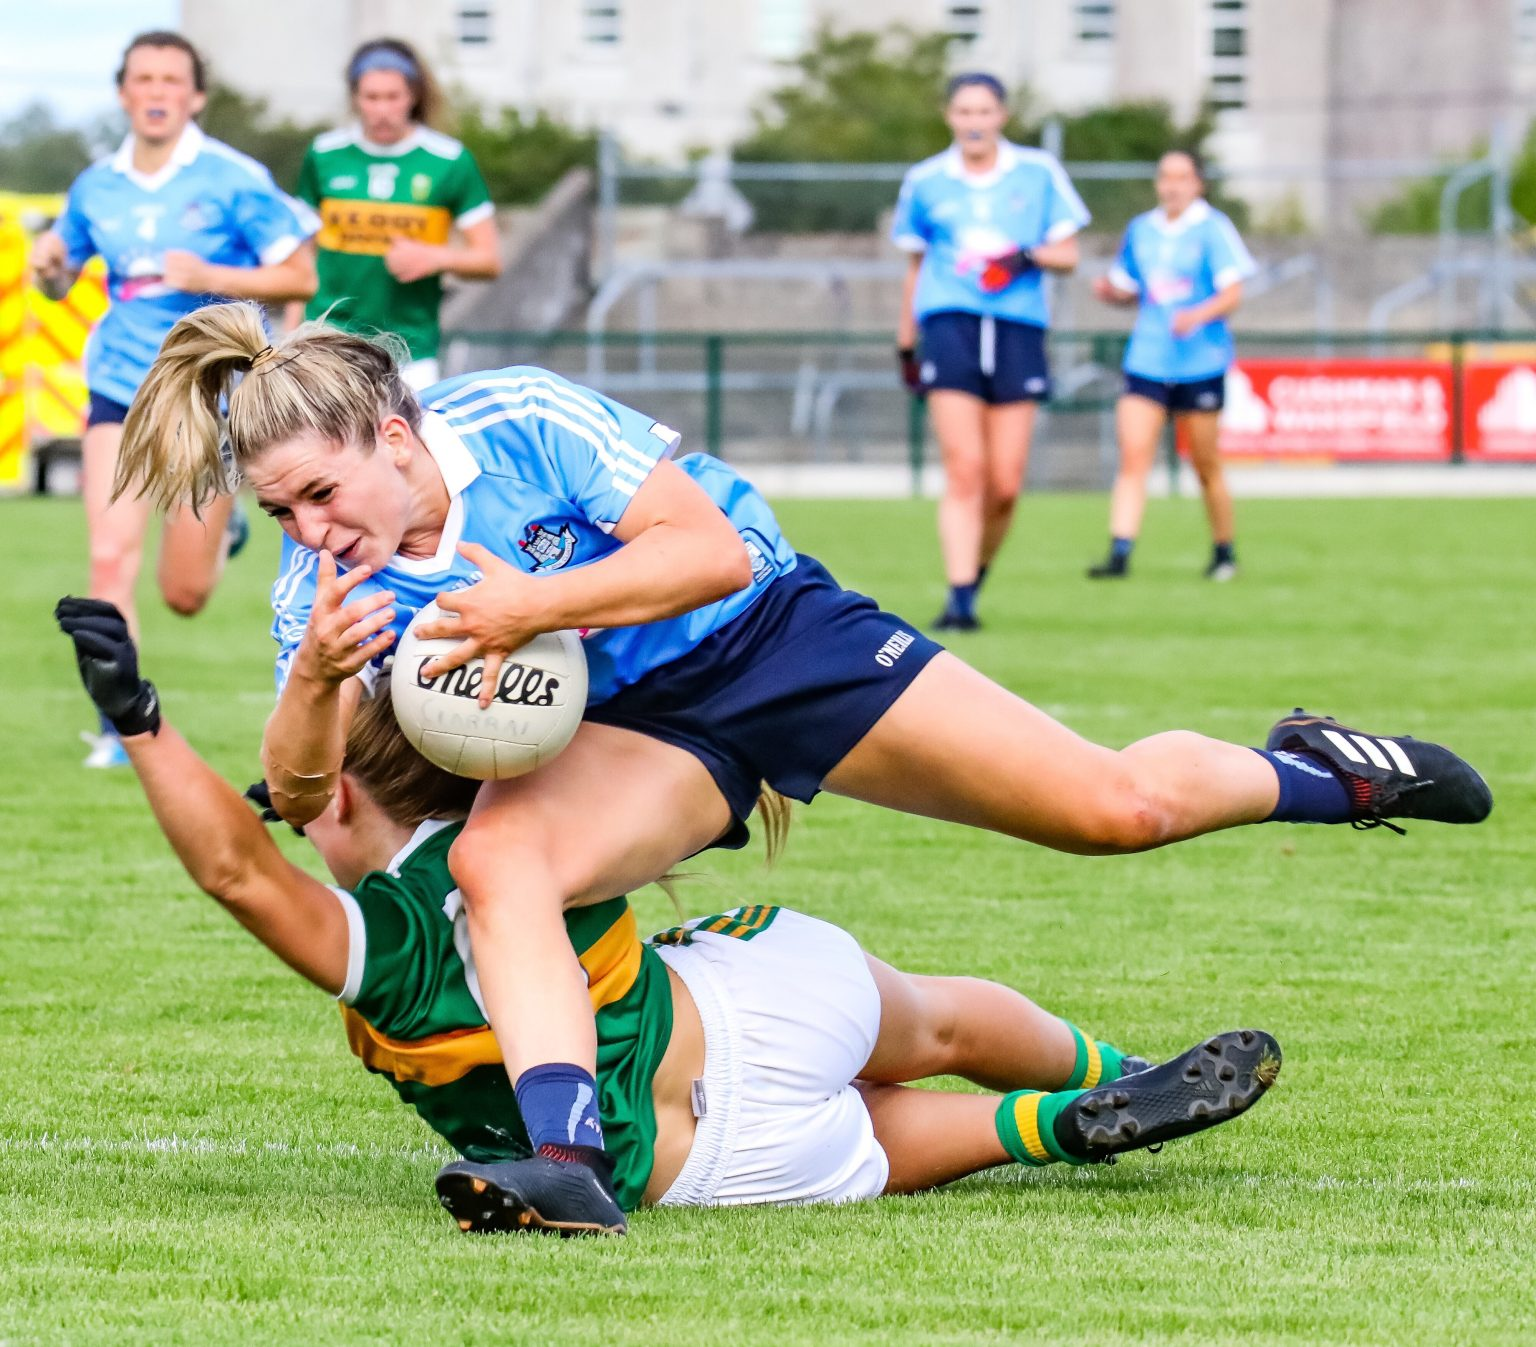 Dublin Ladies footballer in sky blue jersey and navy shorts falls over a Kerry player in green jersey and white shorts as the reigning champions Dublin beat Kerry in the quarter final